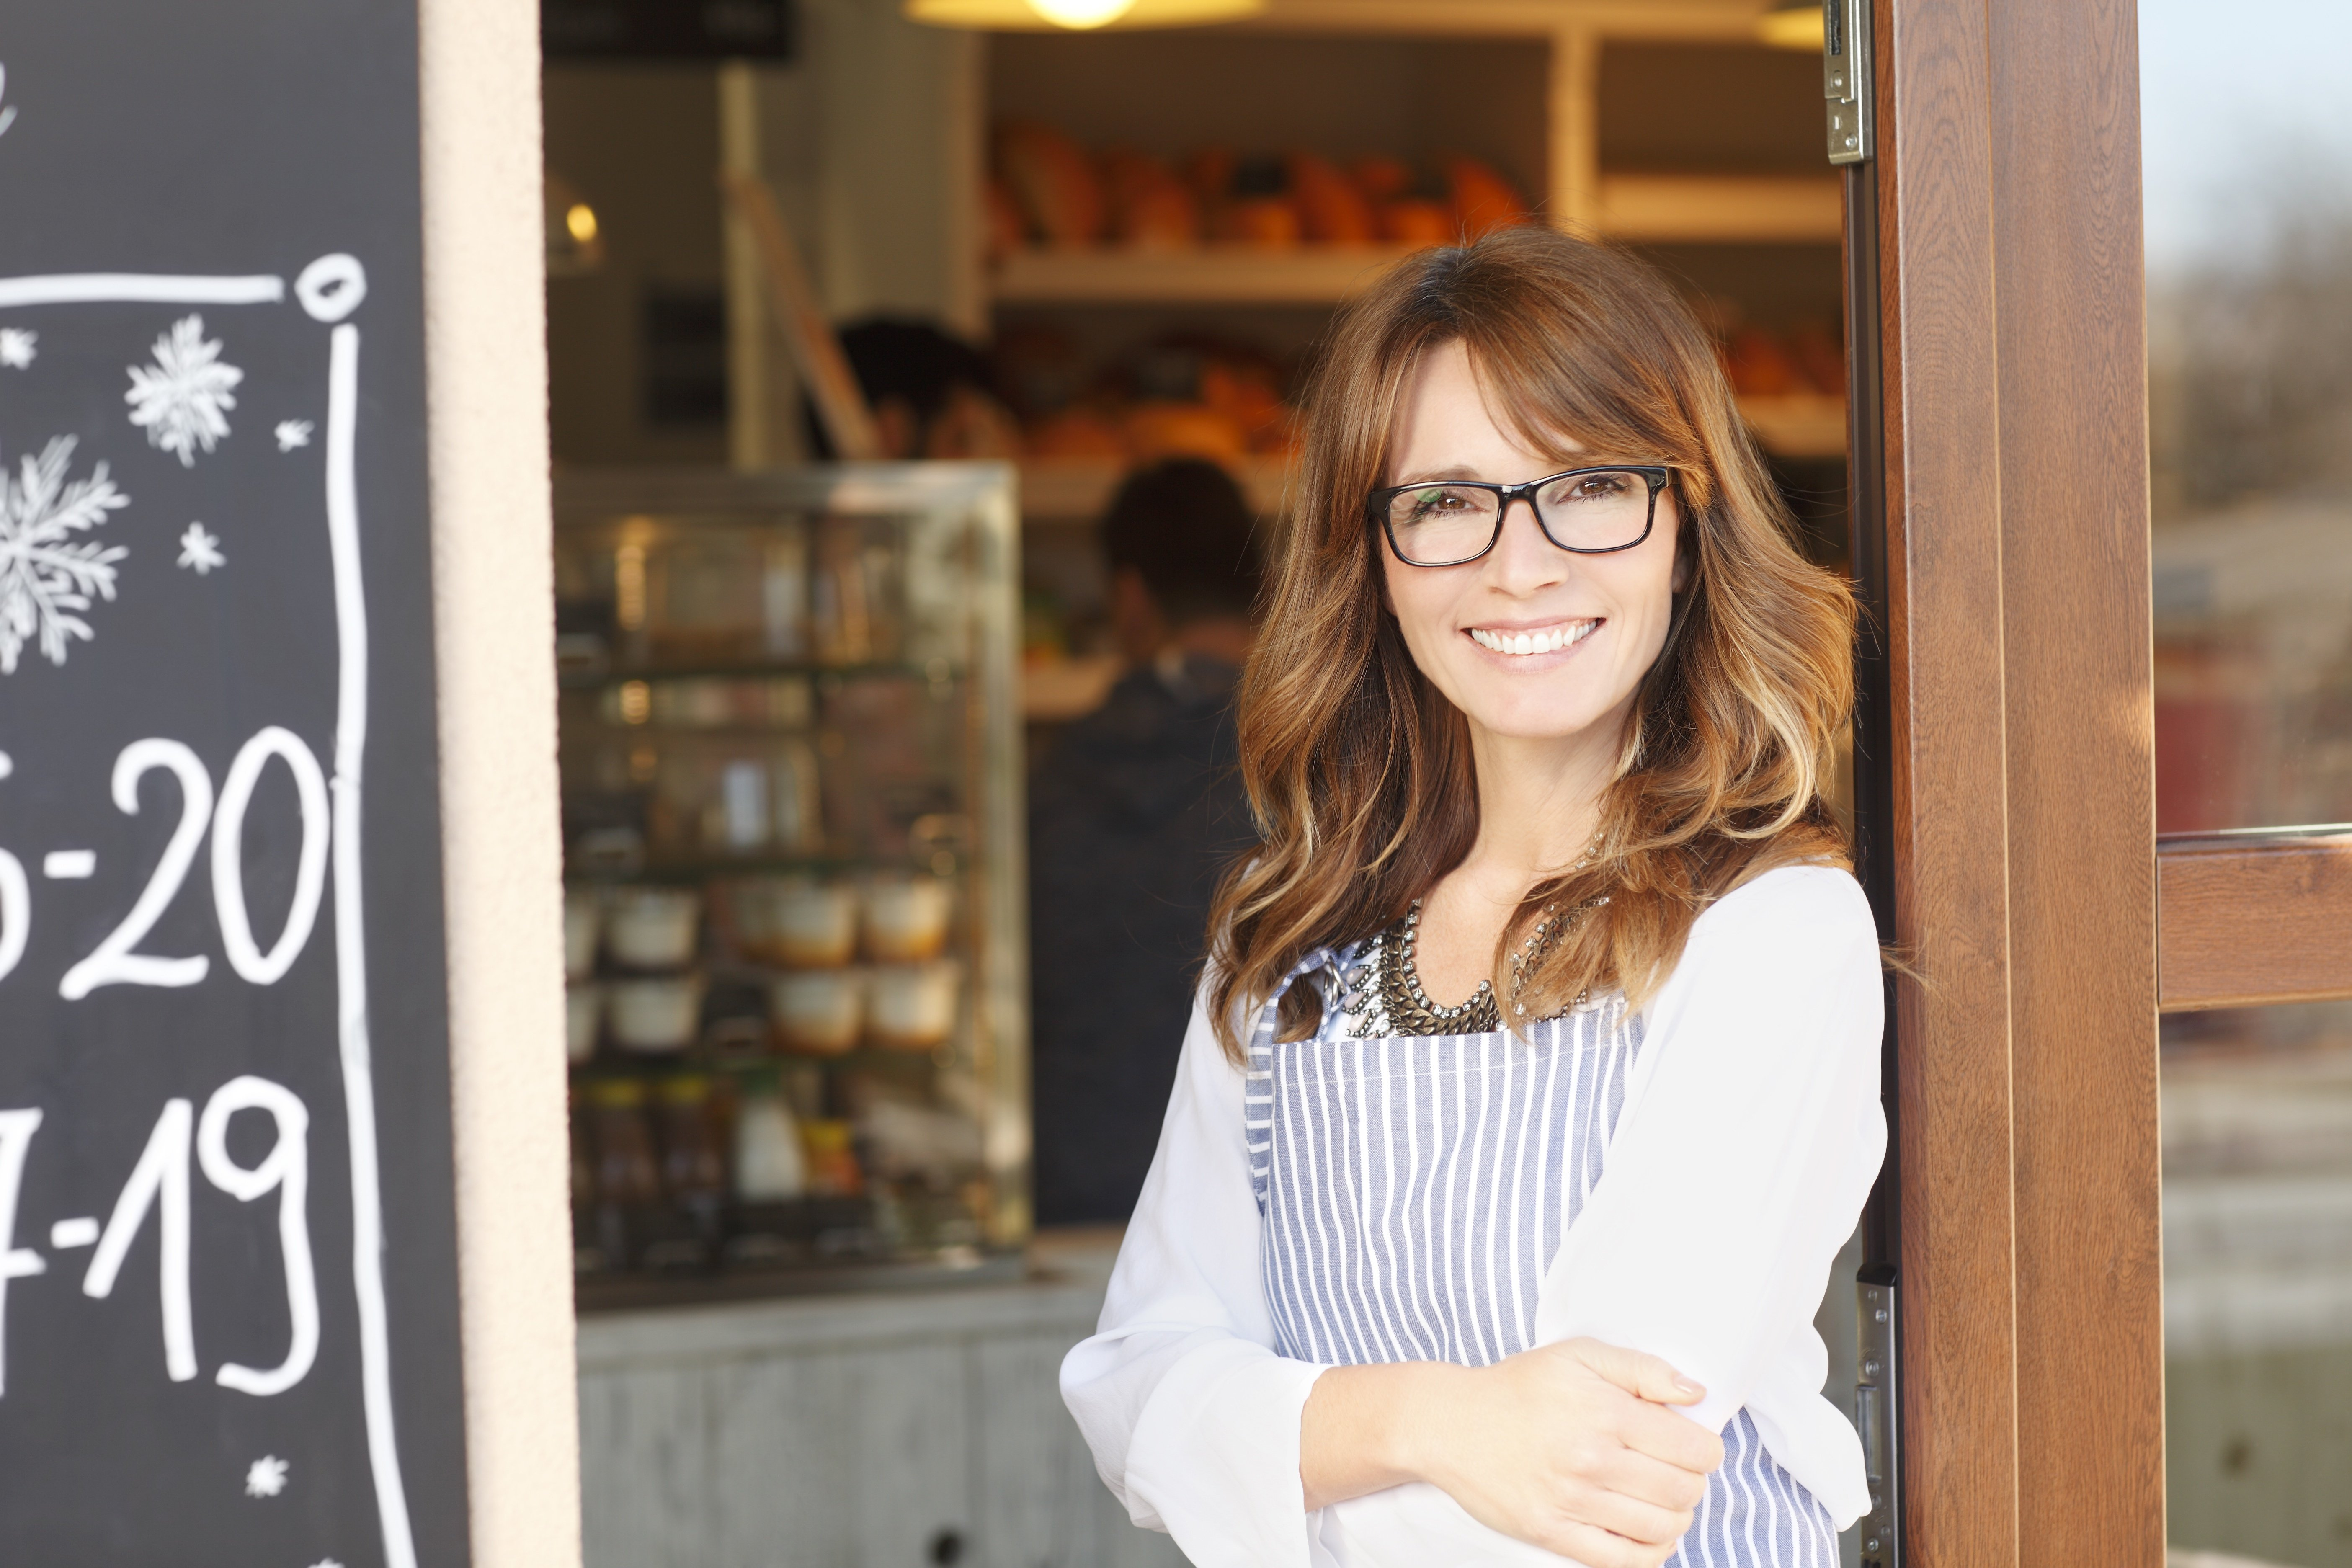 Is Your Prospective Lender Small Business-Friendly? Here's How to Tell